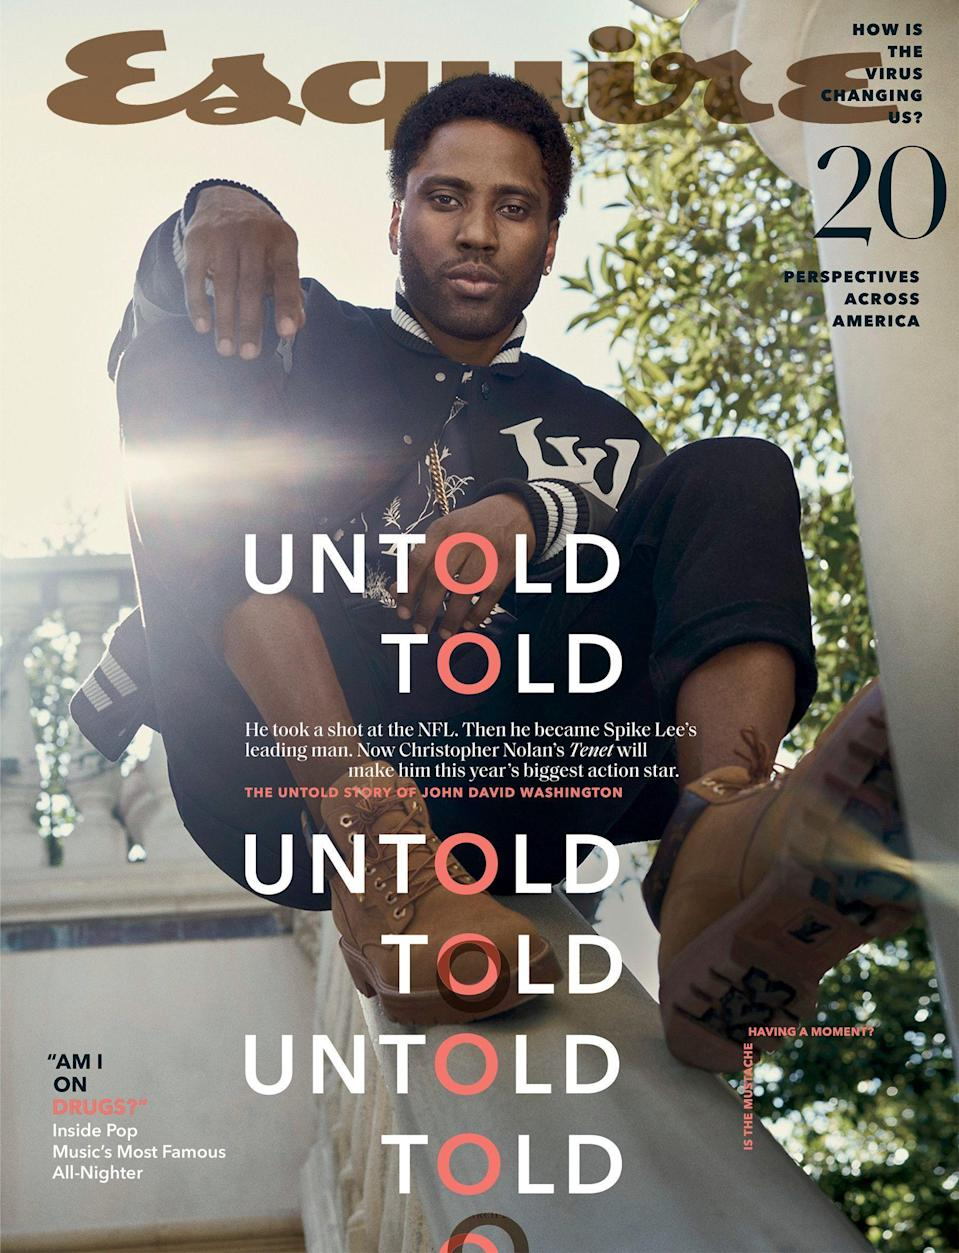 "<p>hearstmags.com</p><p><a href=""https://subscribe.hearstmags.com/subscribe/splits/esquire/esq_sub_nav_link"" rel=""nofollow noopener"" target=""_blank"" data-ylk=""slk:One Year for Just $15"" class=""link rapid-noclick-resp"">One Year for Just $15</a></p>"